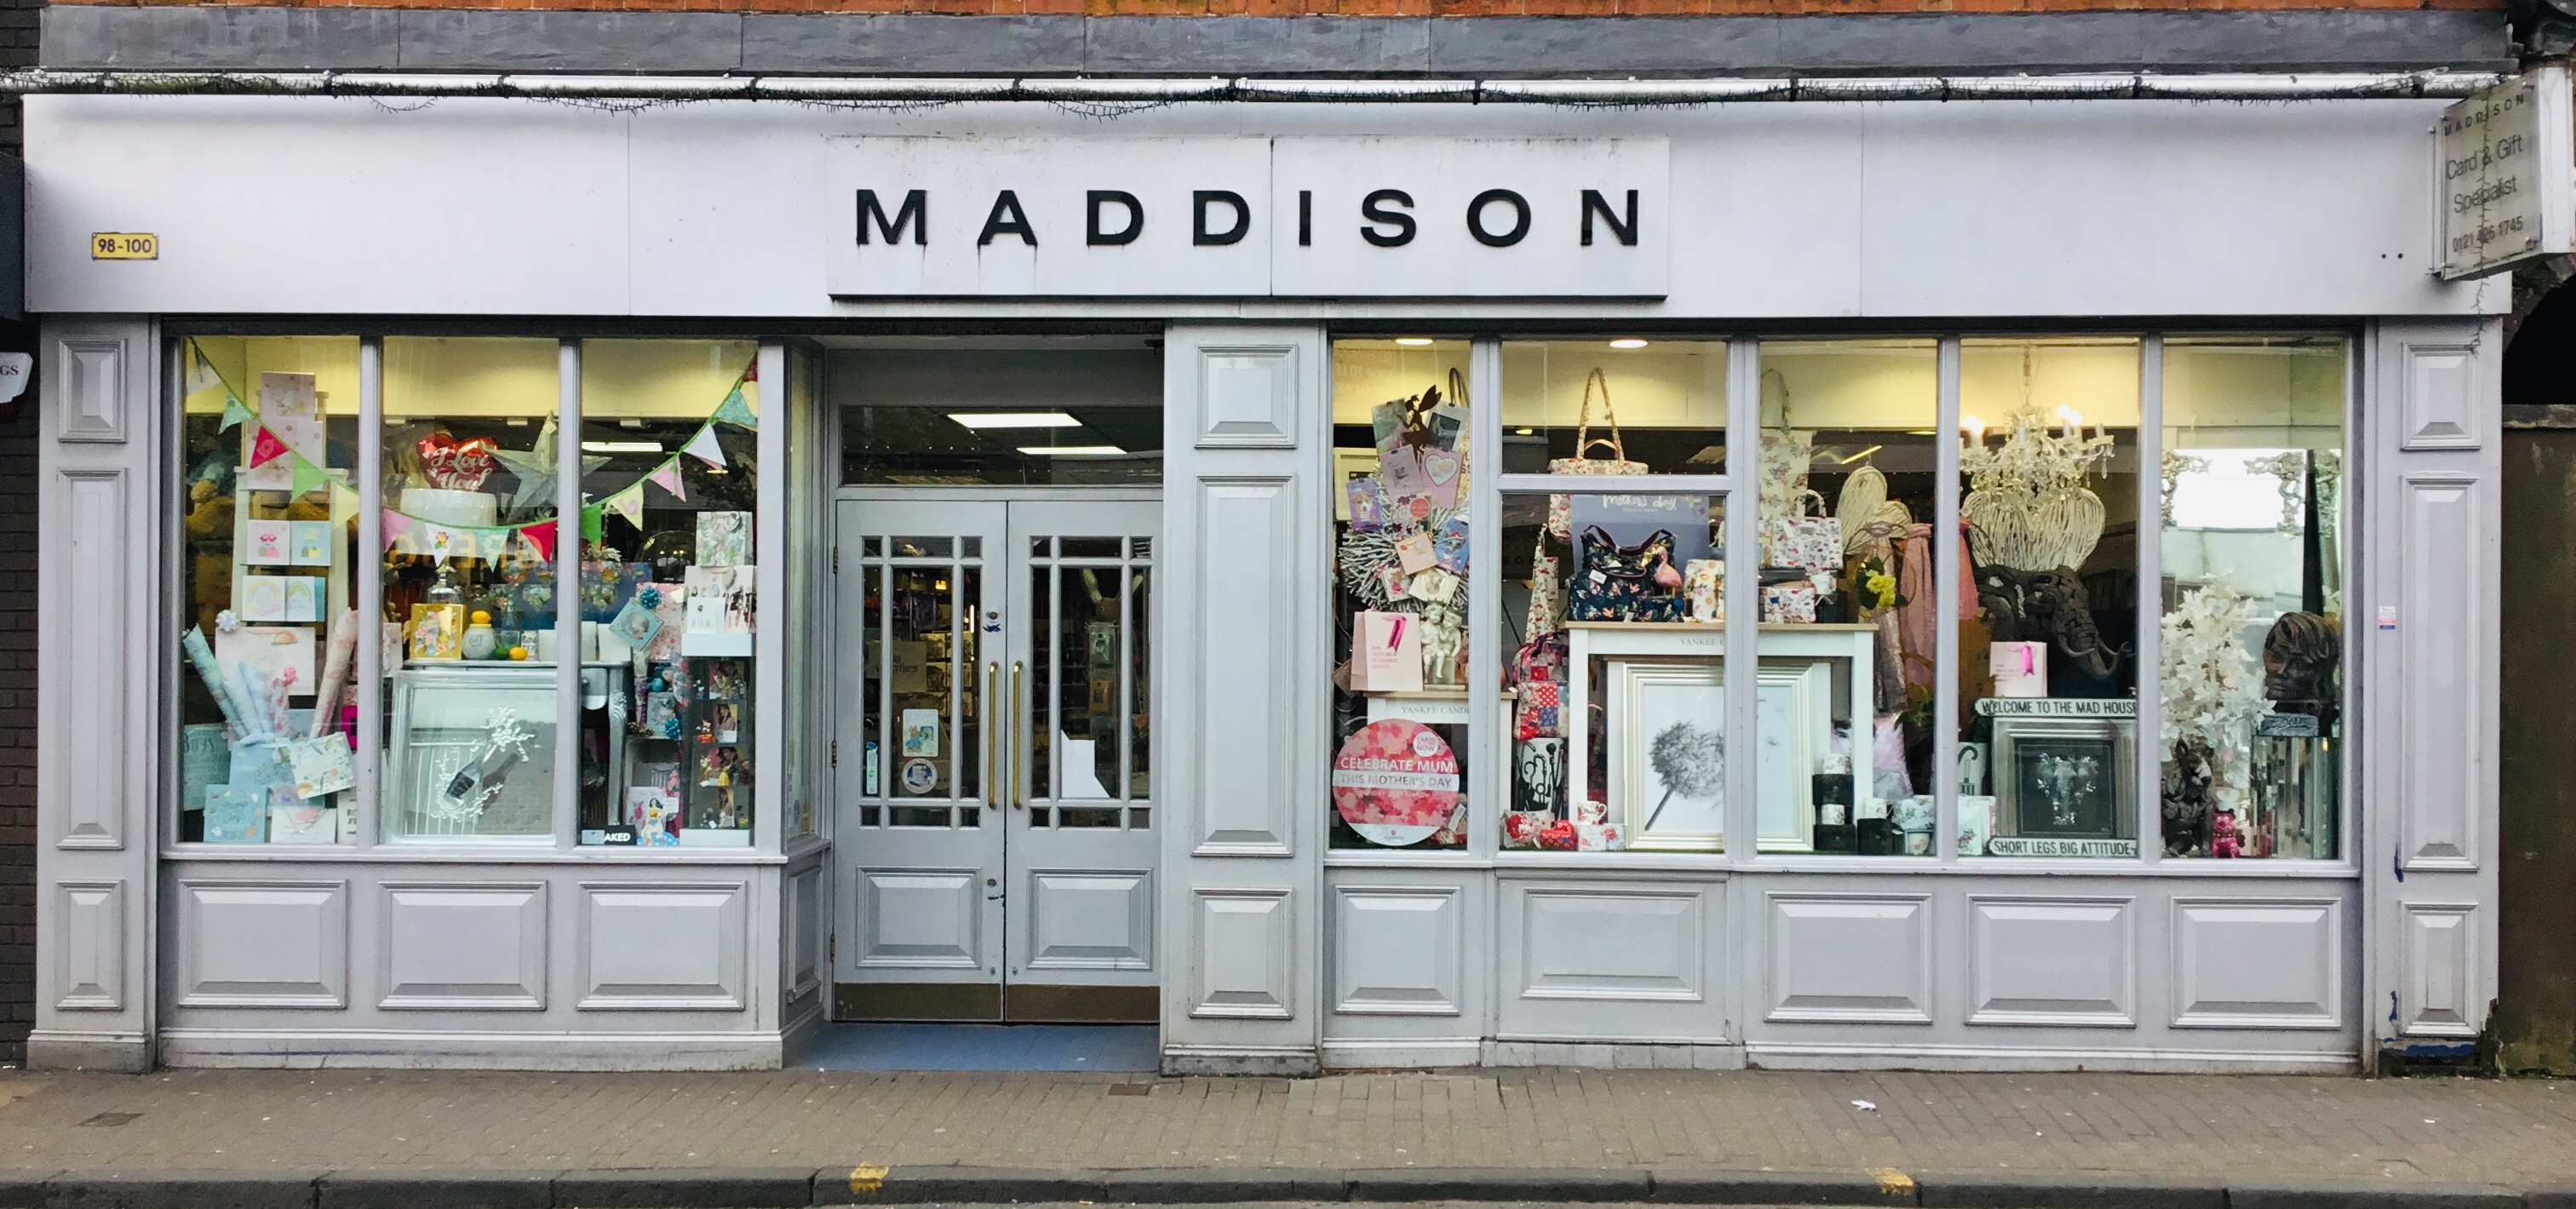 Above: The Christmas card sales were strong across all four of the Bentleys/Maddison stores.